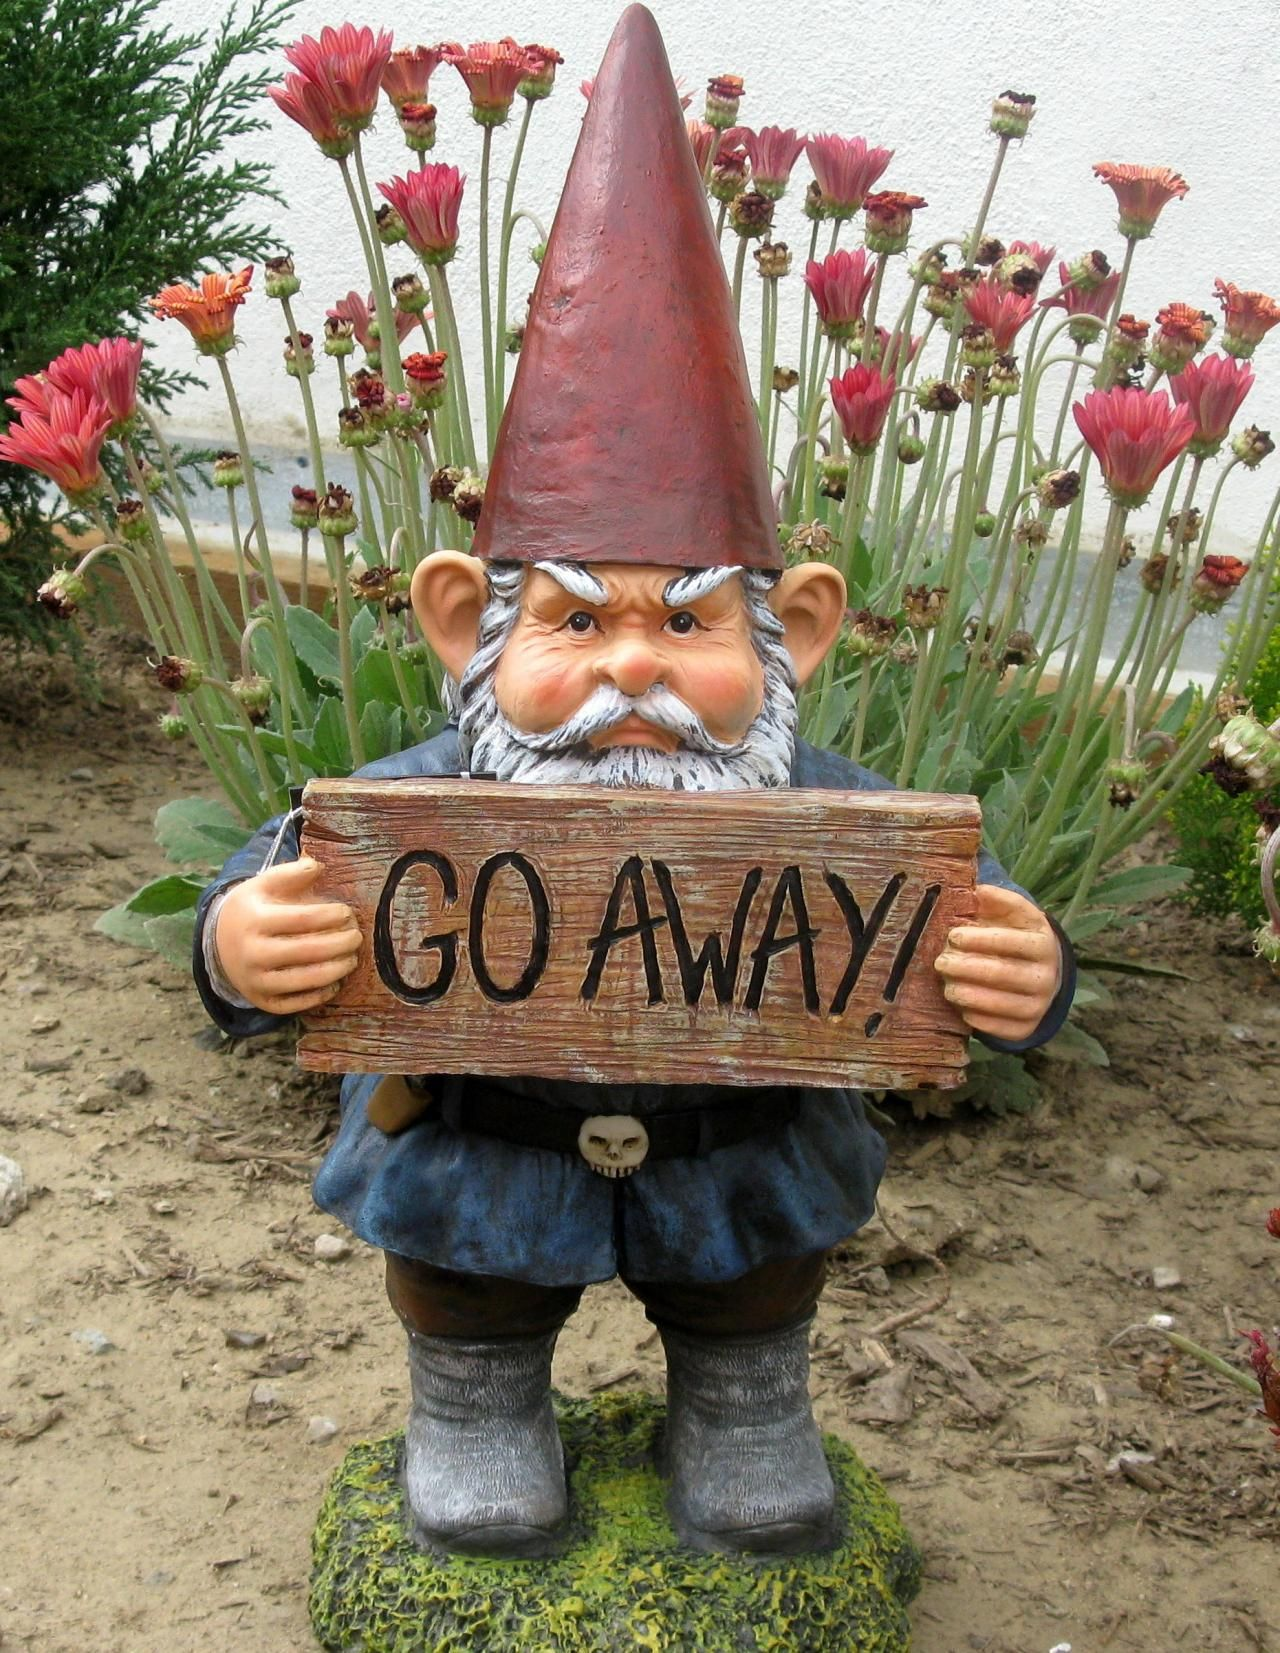 go away gnome excerpt more - Funny Garden Gnomes